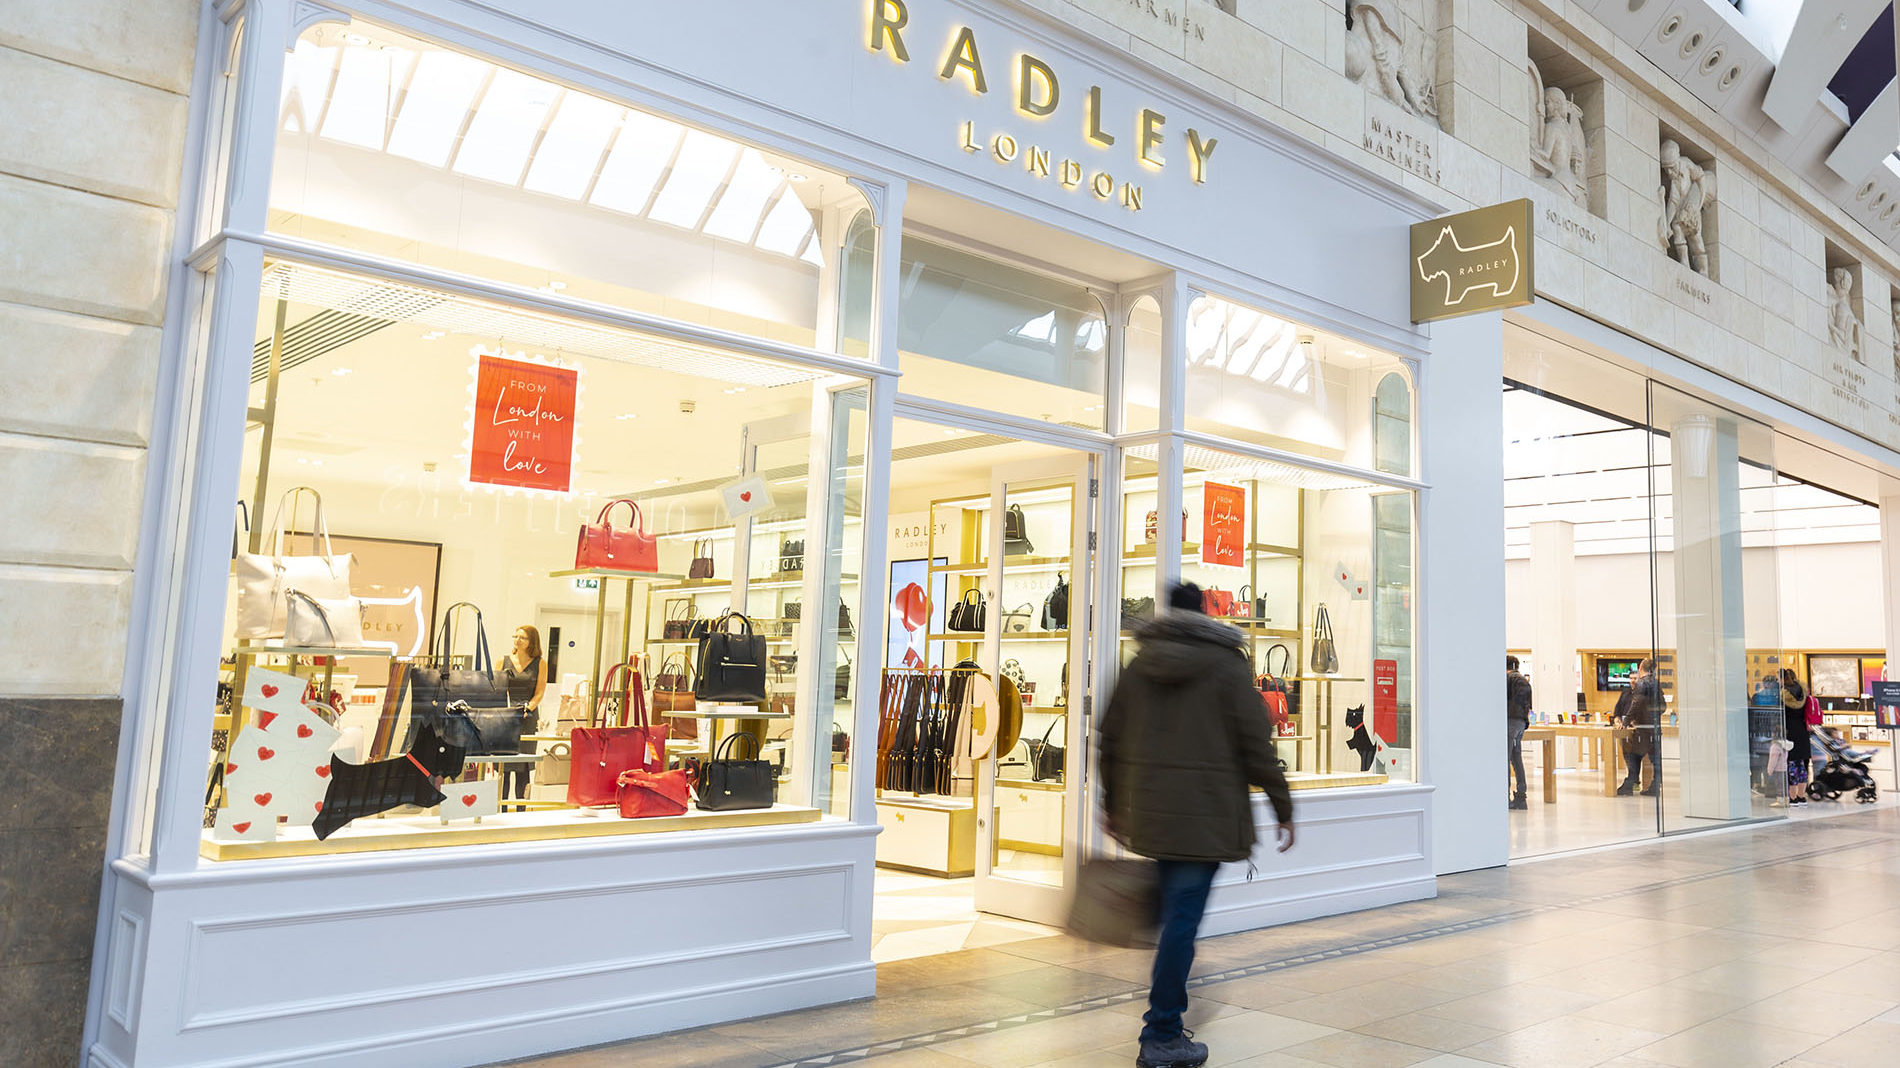 Radley store front at Bluewater shopping centre